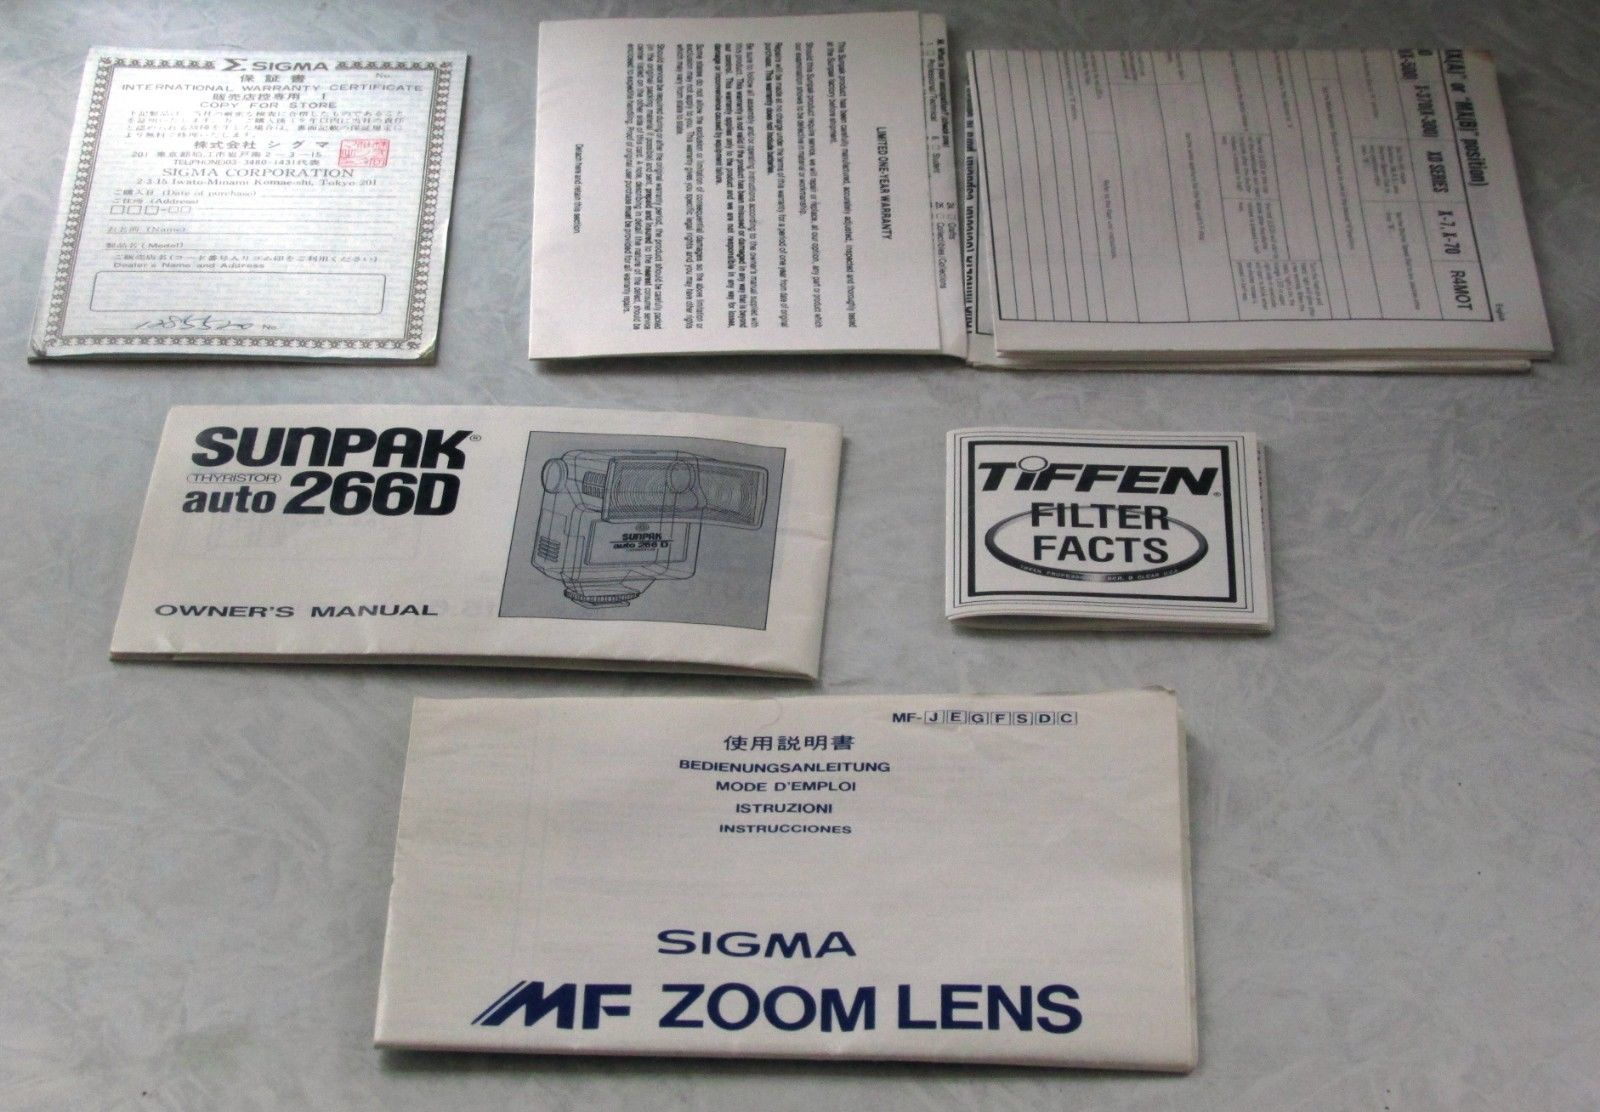 Minolta X-7 35mm Film Camera Sunpak 266D Flash Sigma UC Zoom 70-210mm Lens